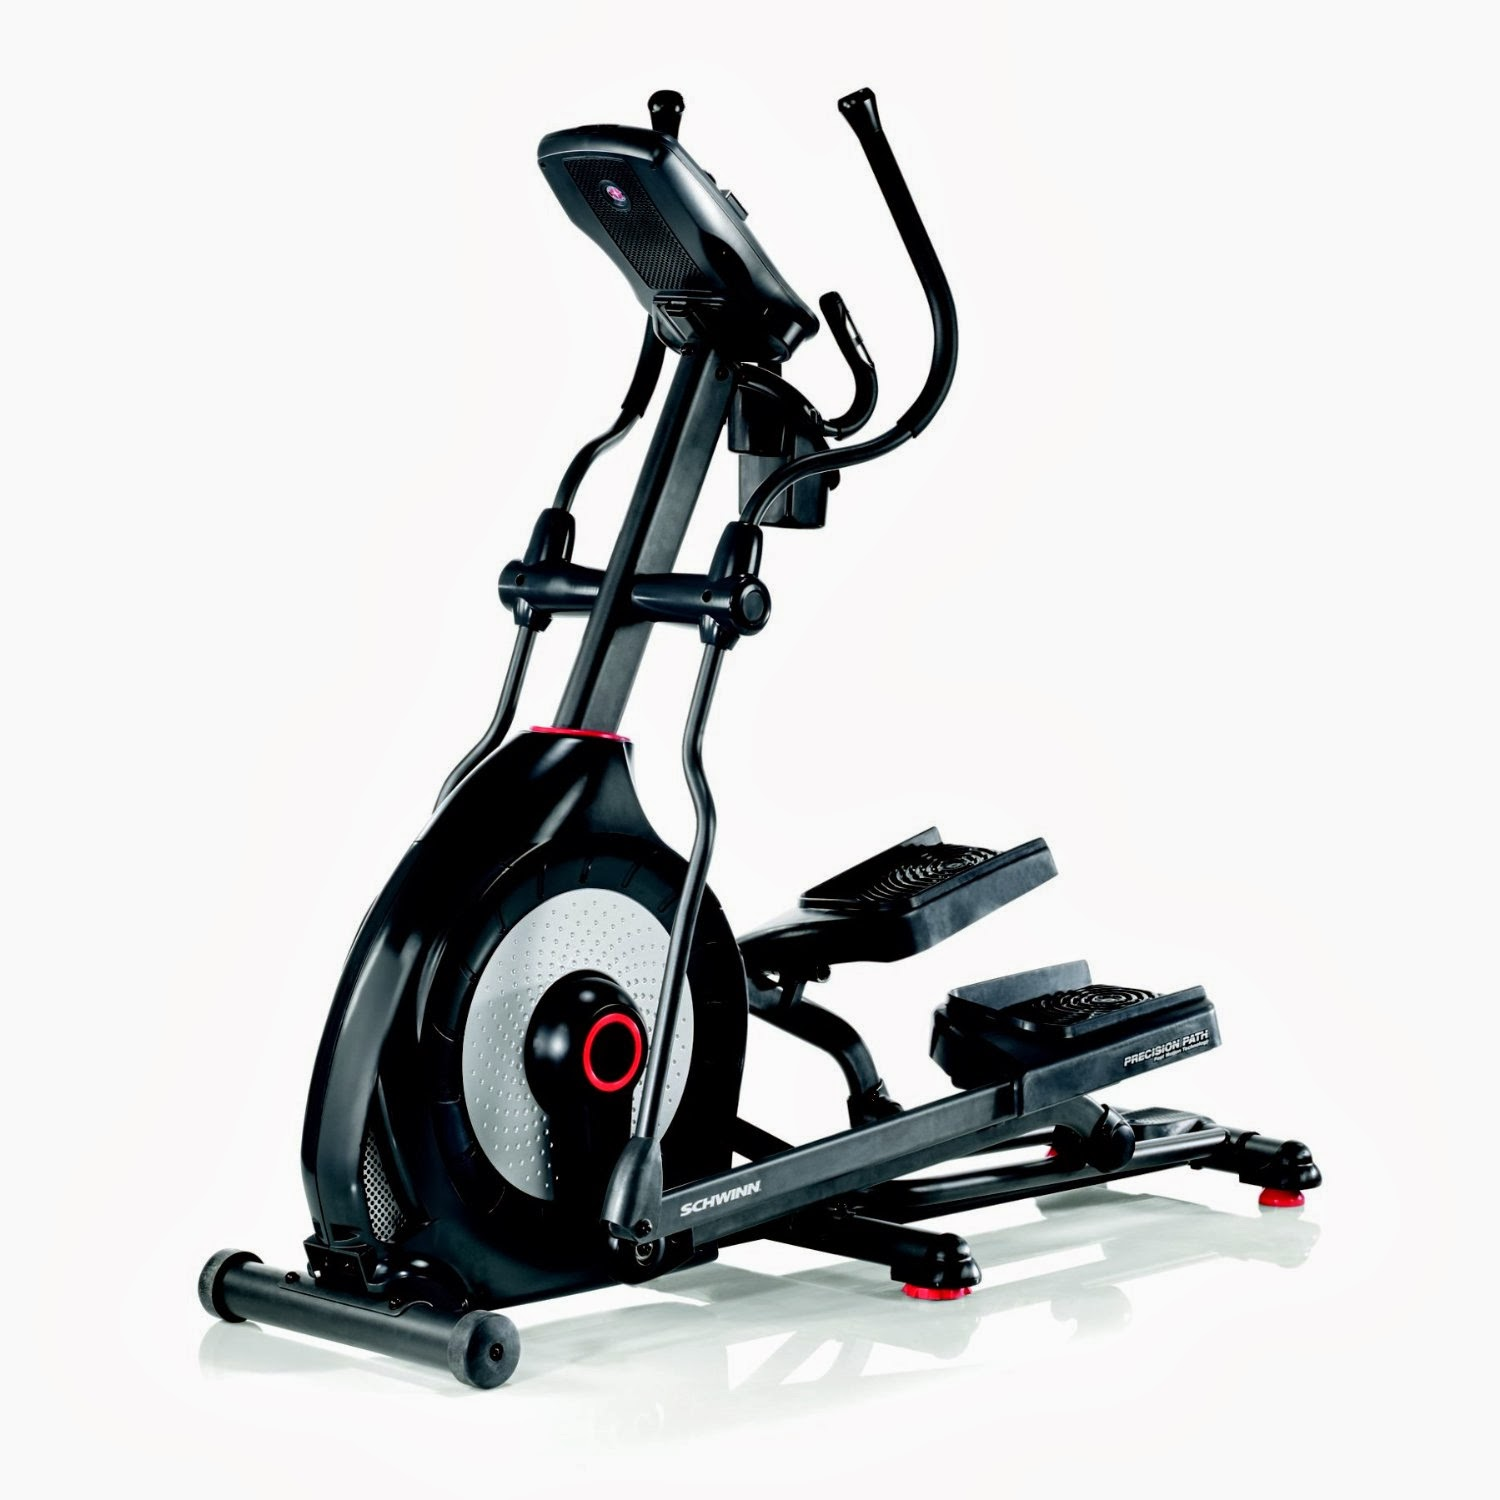 Schwinn 470 Elliptical Trainer, how to choose the best elliptical trainer for you